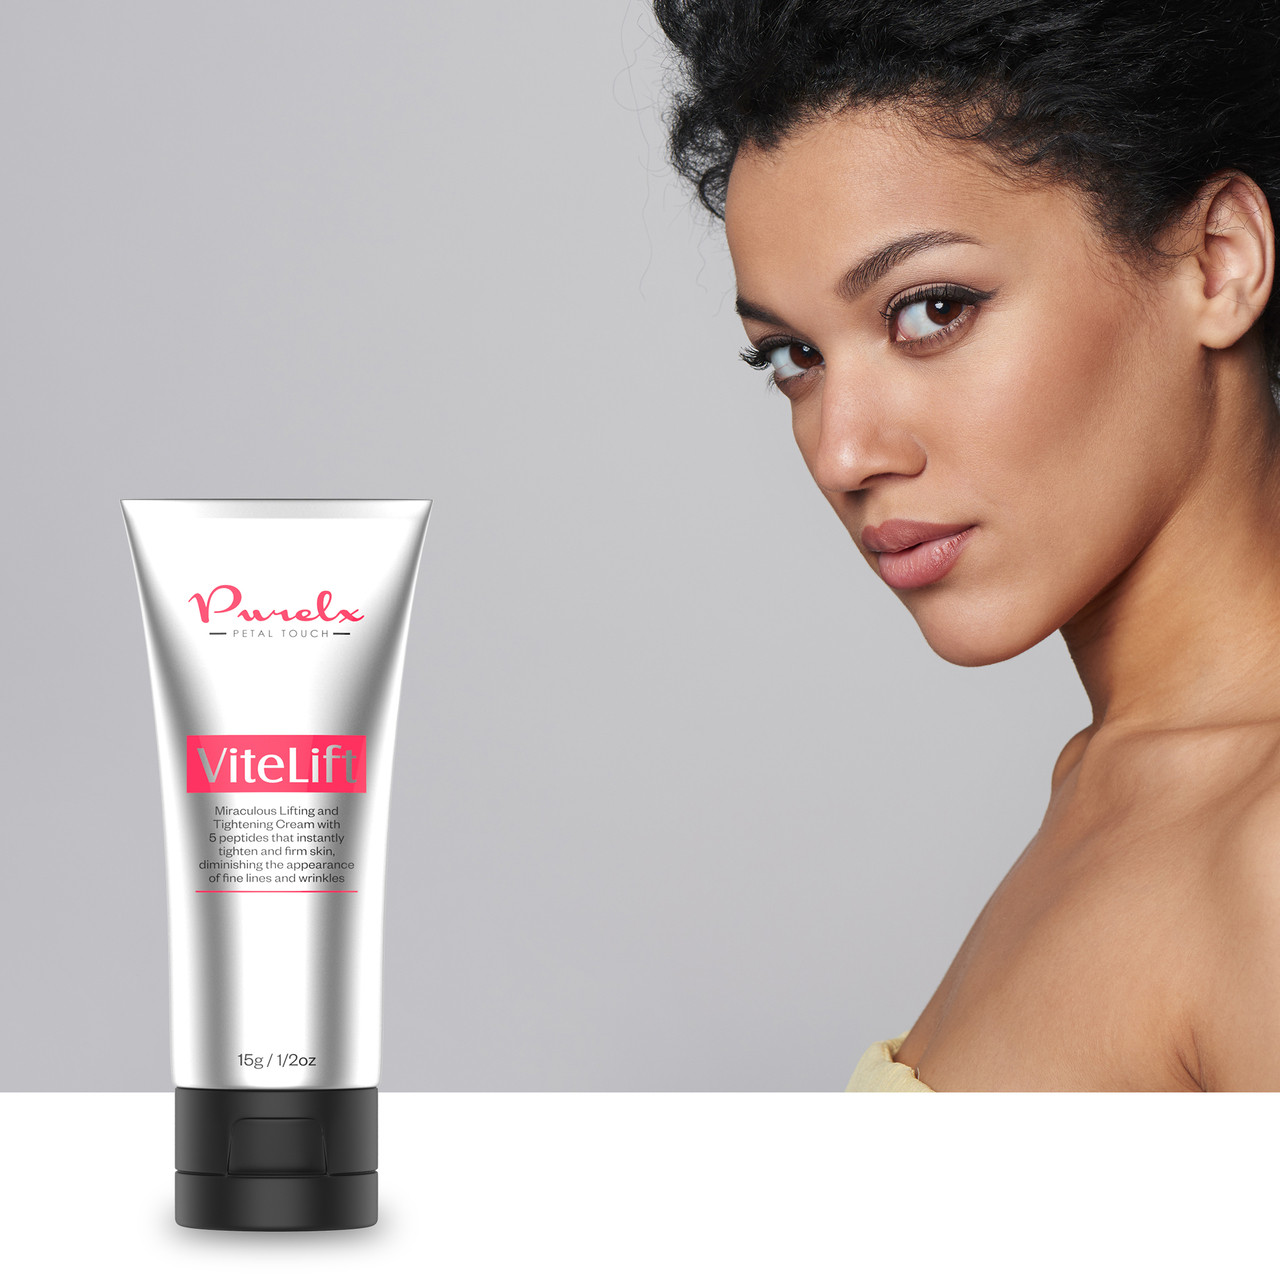 Look the age you feel with ViteLift Instant Lift Serum.